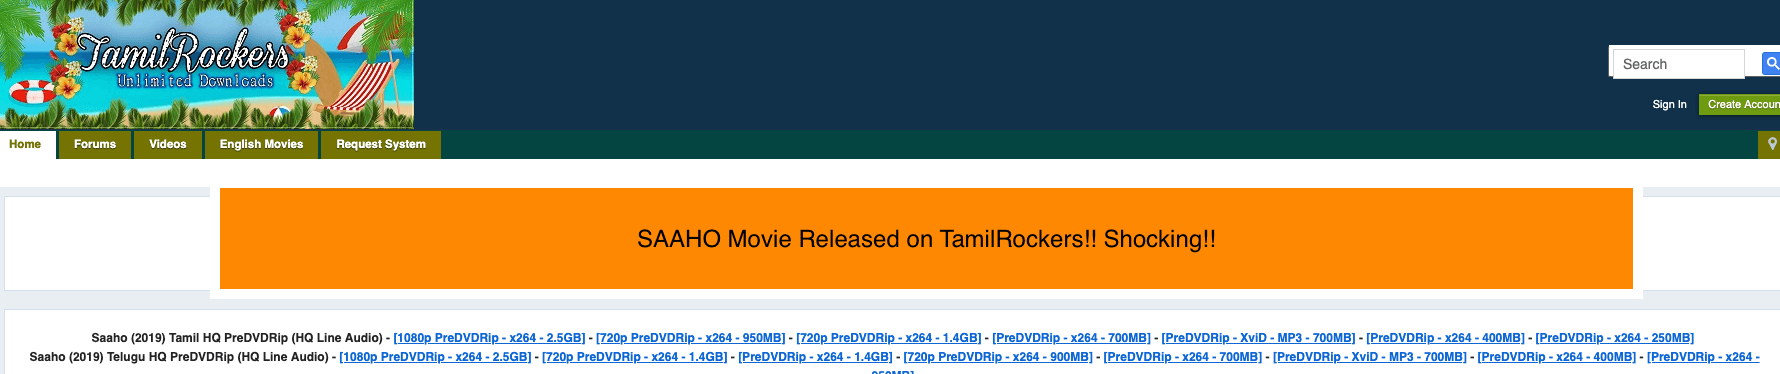 Saaho Movie Online & Download on TamilRockers and Torrent